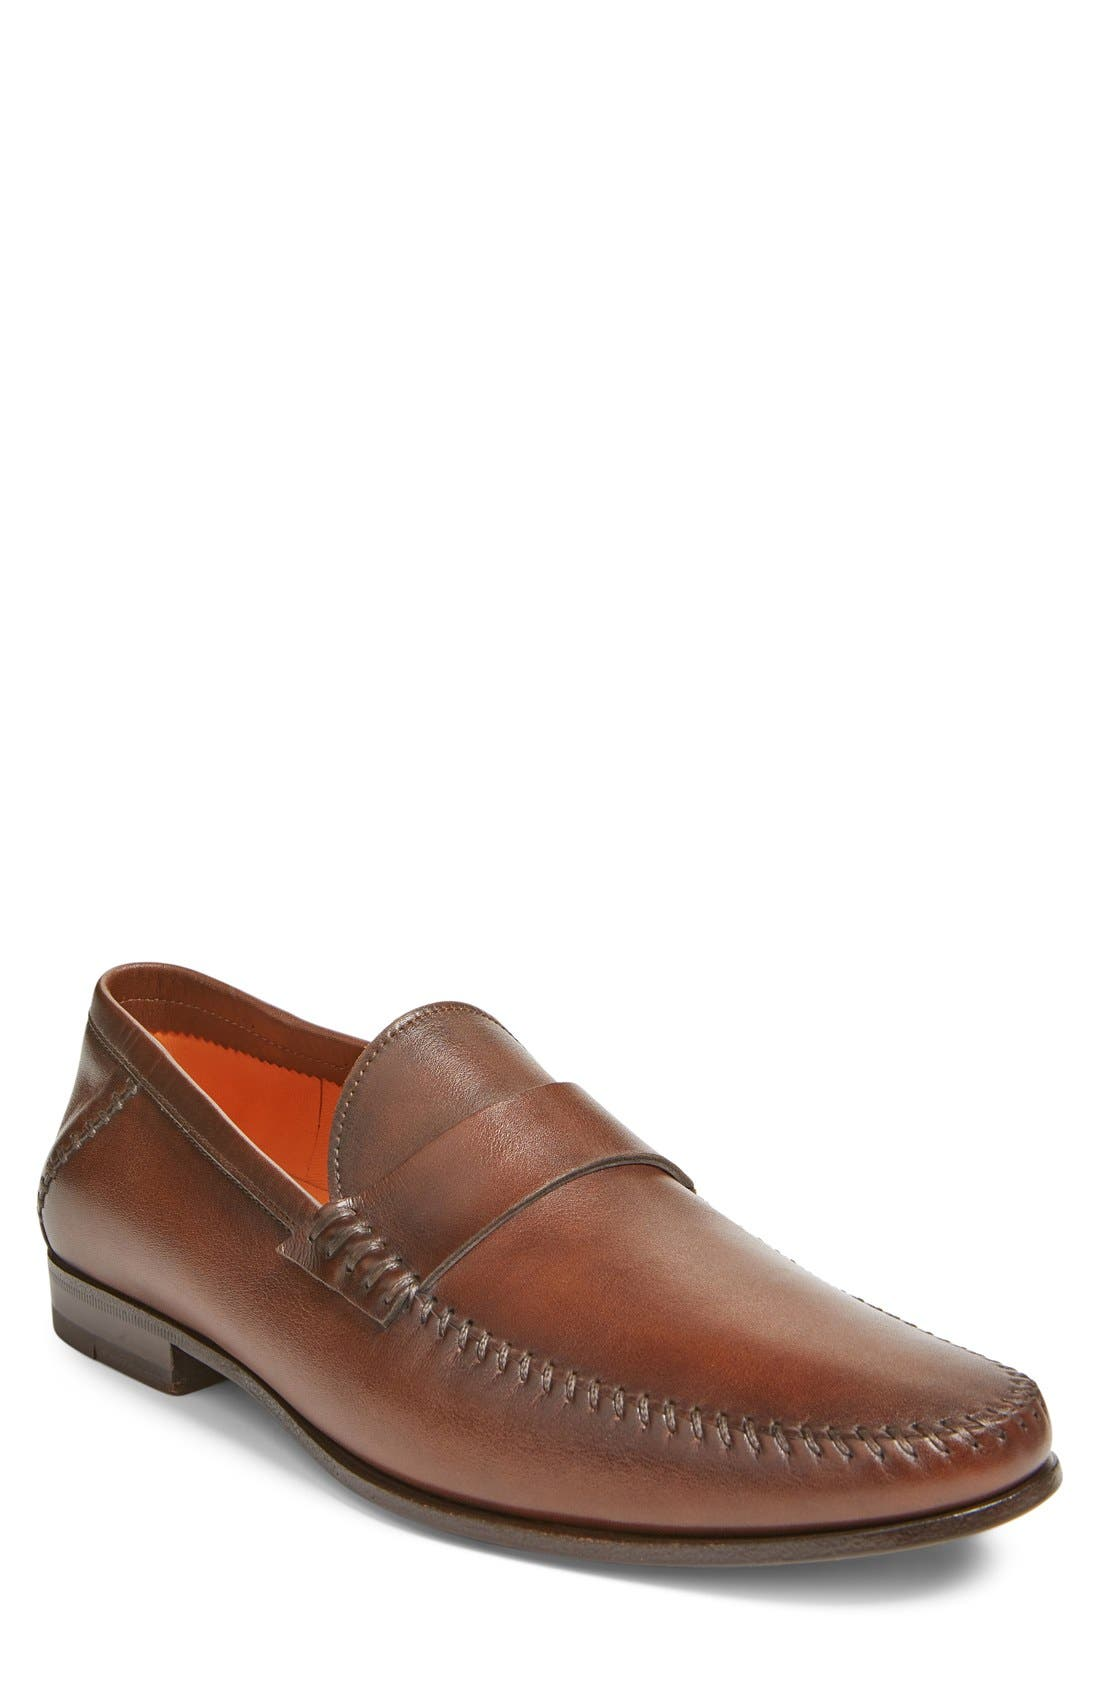 Main Image - Santoni 'Paine' Loafer